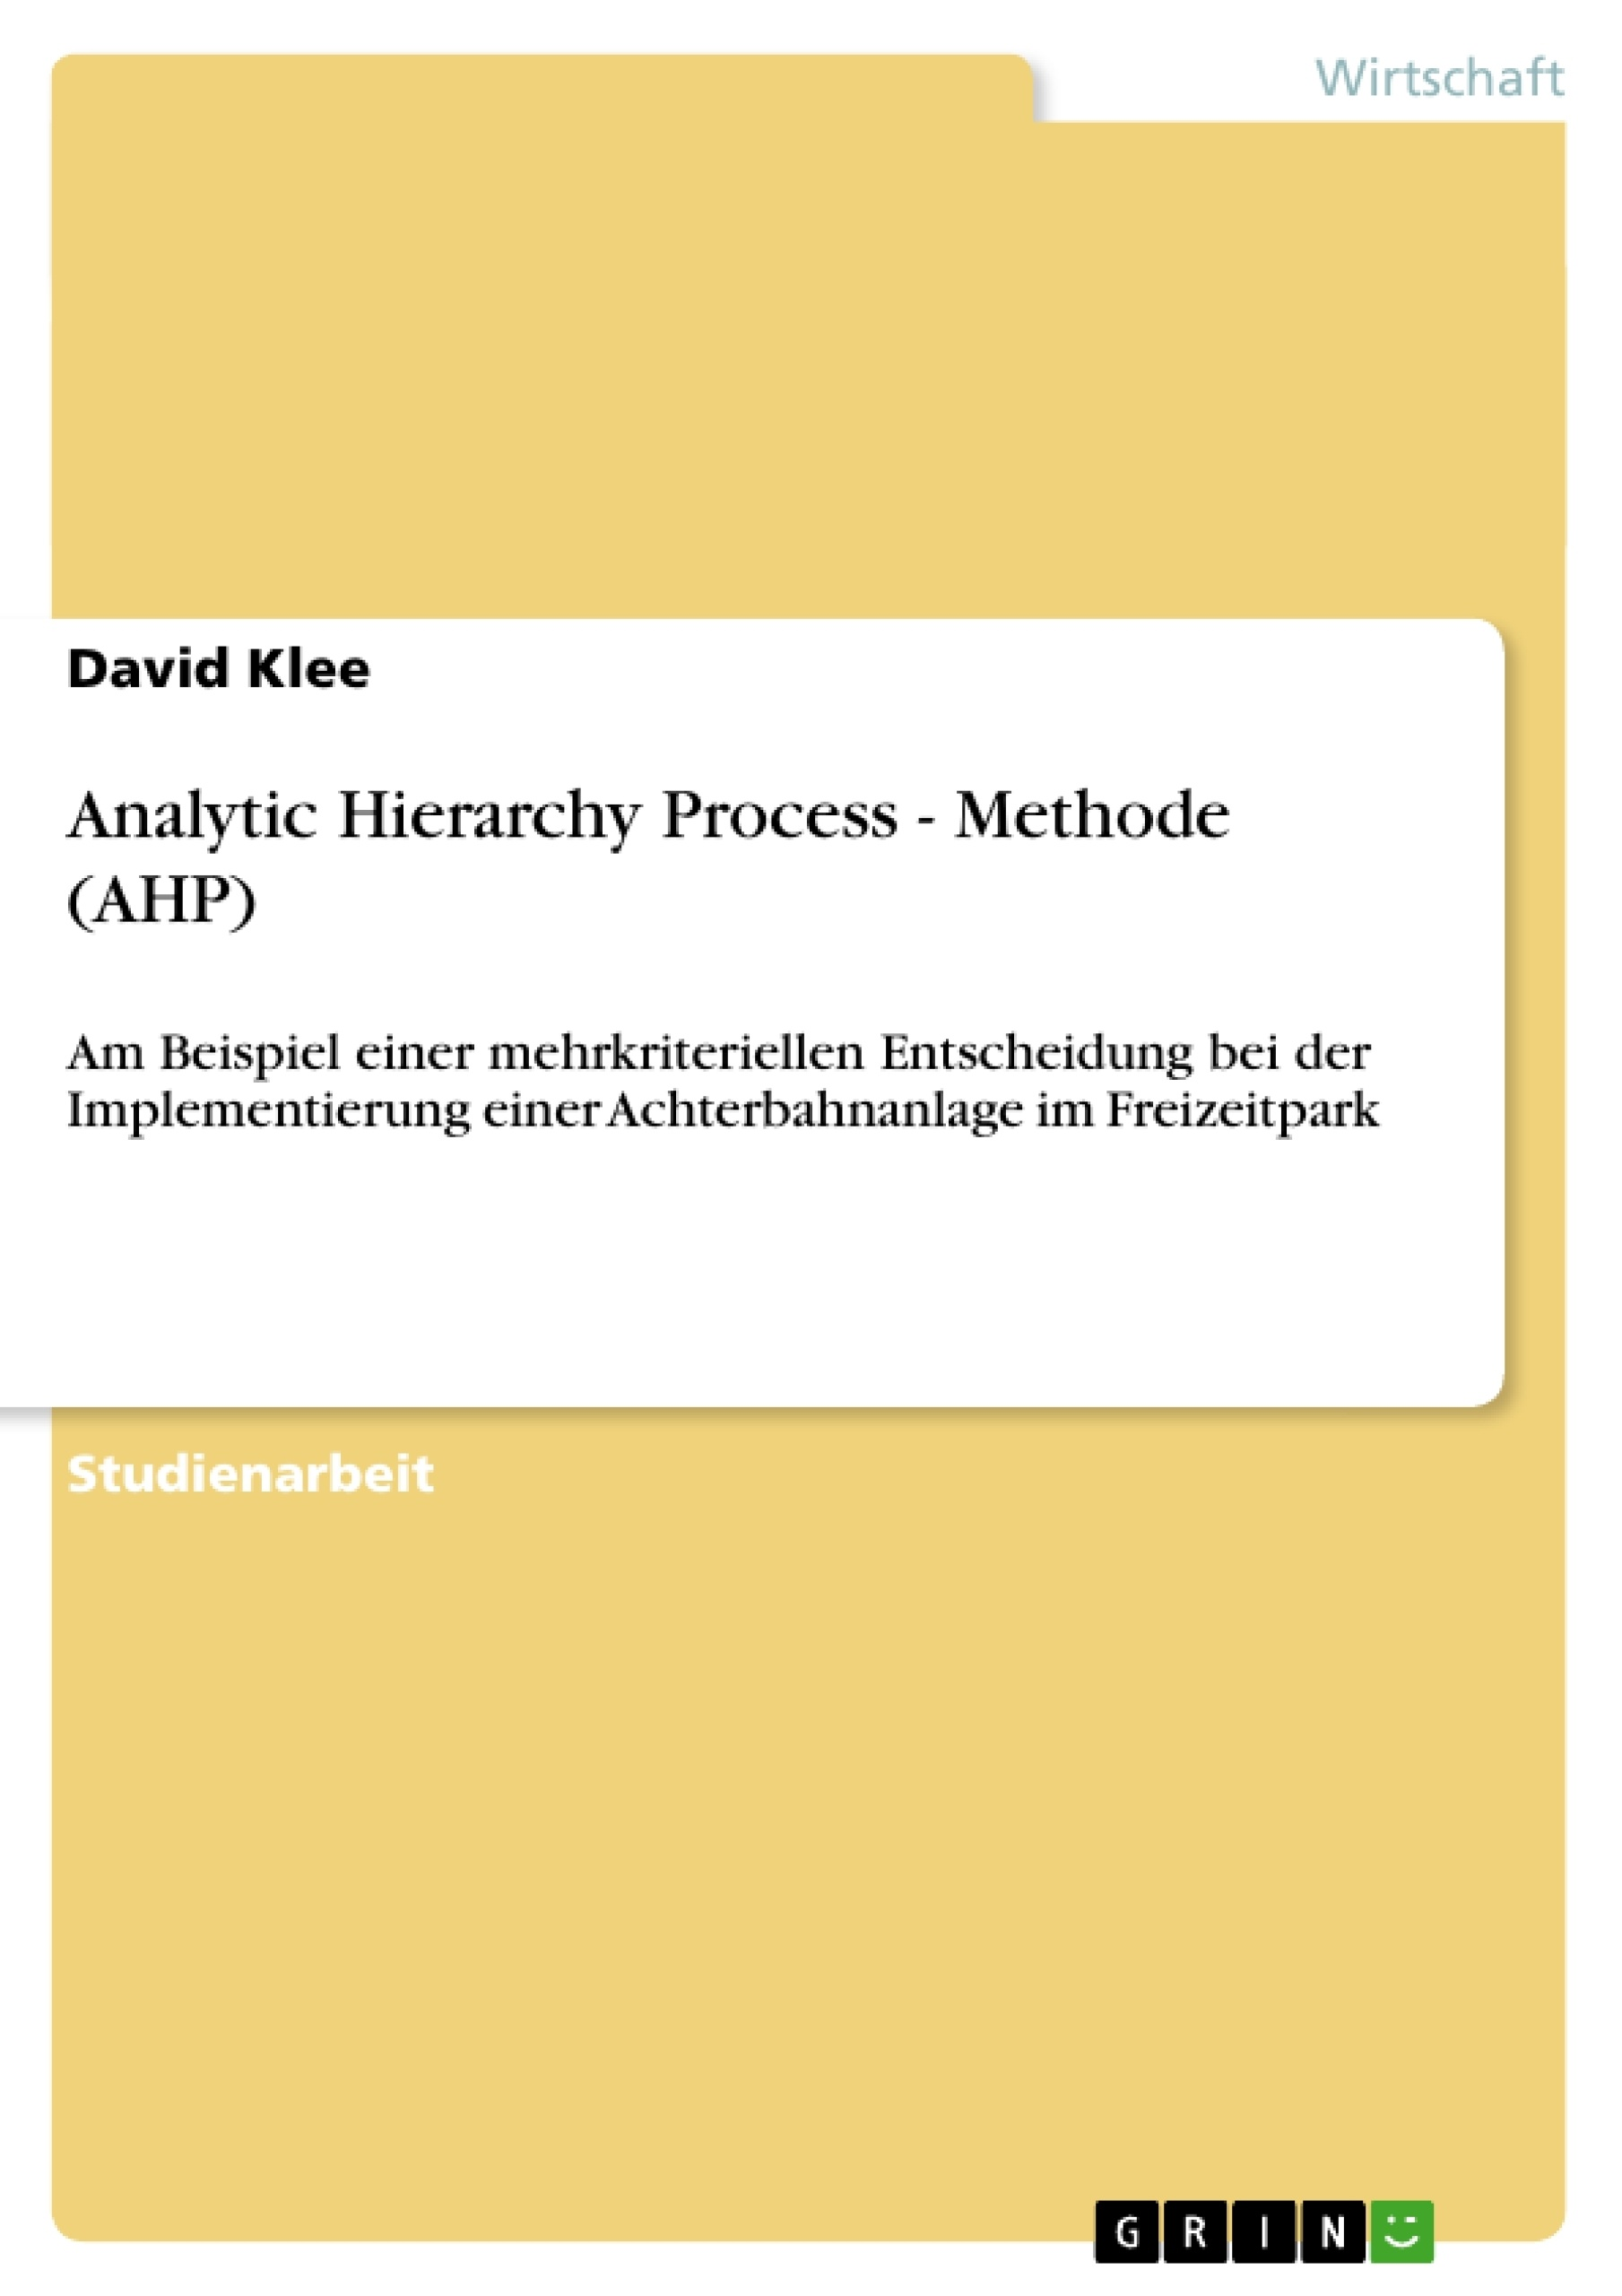 Titel: Analytic Hierarchy Process - Methode (AHP)